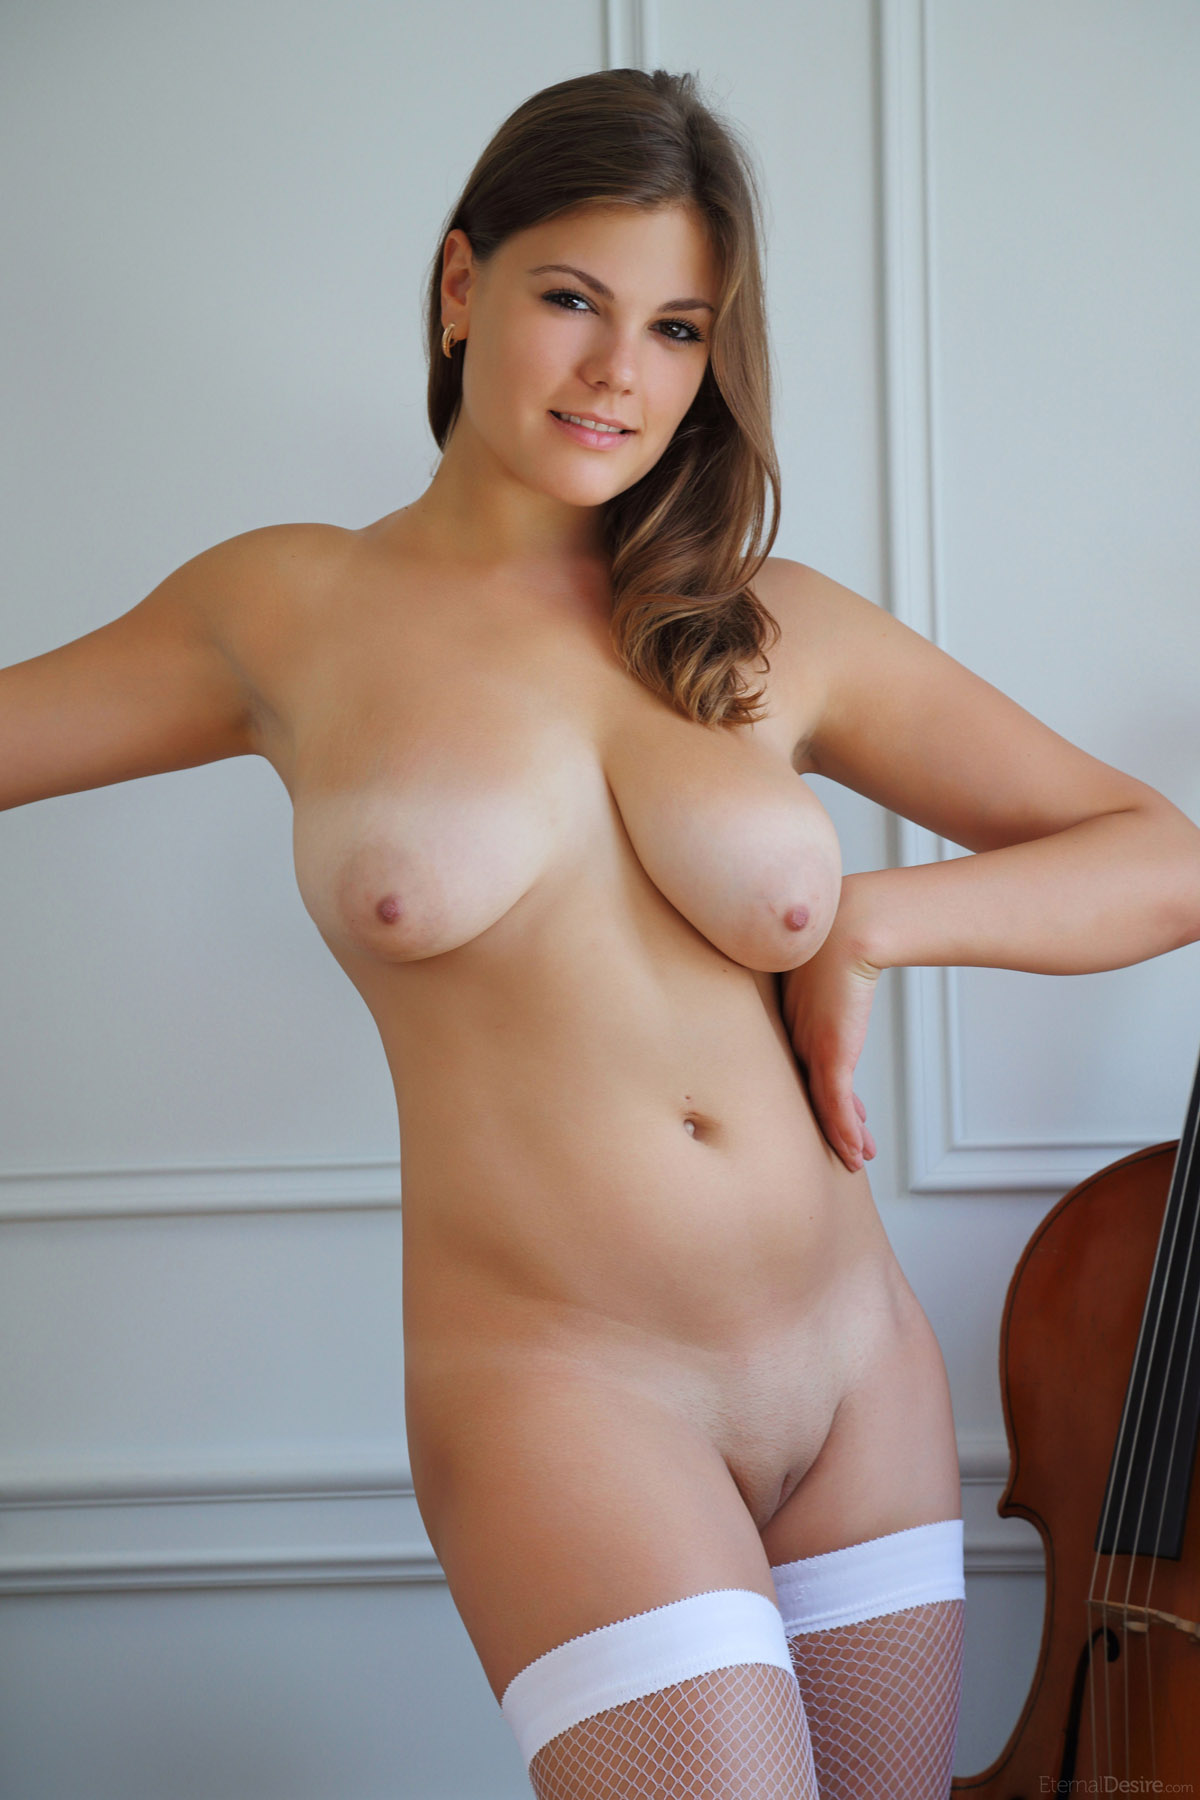 Lora elizabeth green and naked pictures — pic 12